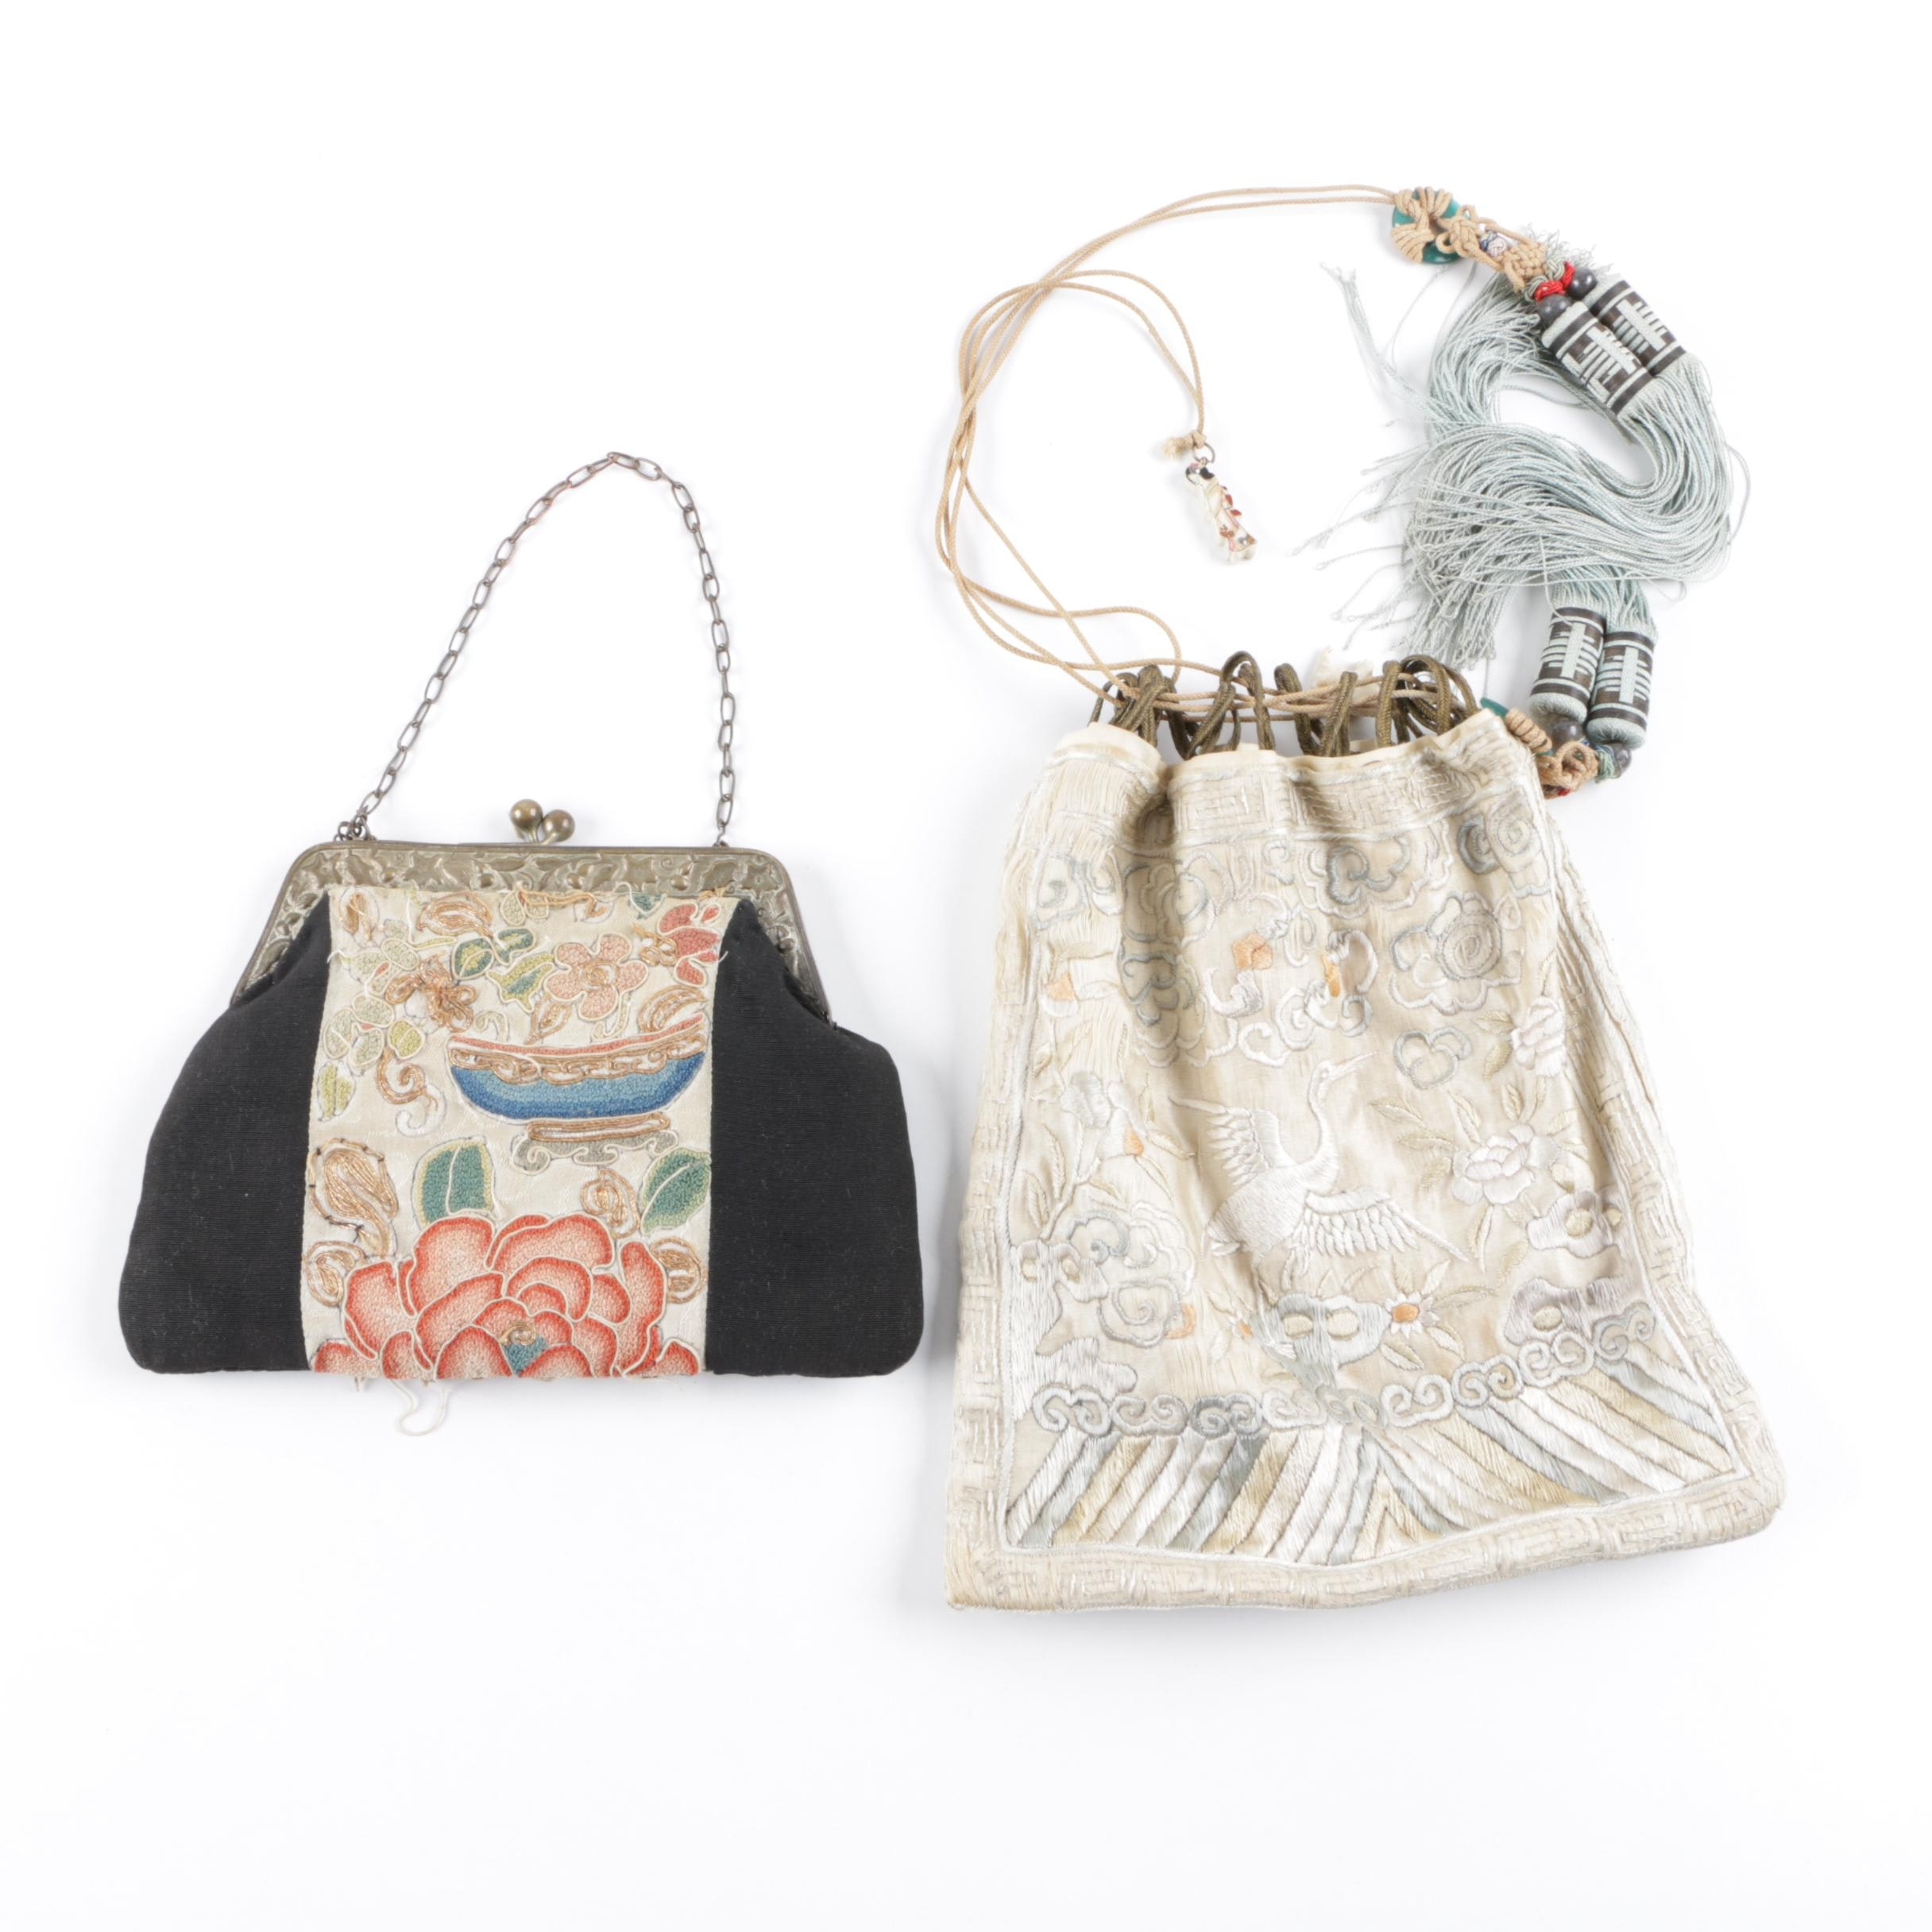 Vintage Chinese Embroidered Handbags with Glass and Bone Bead Accents